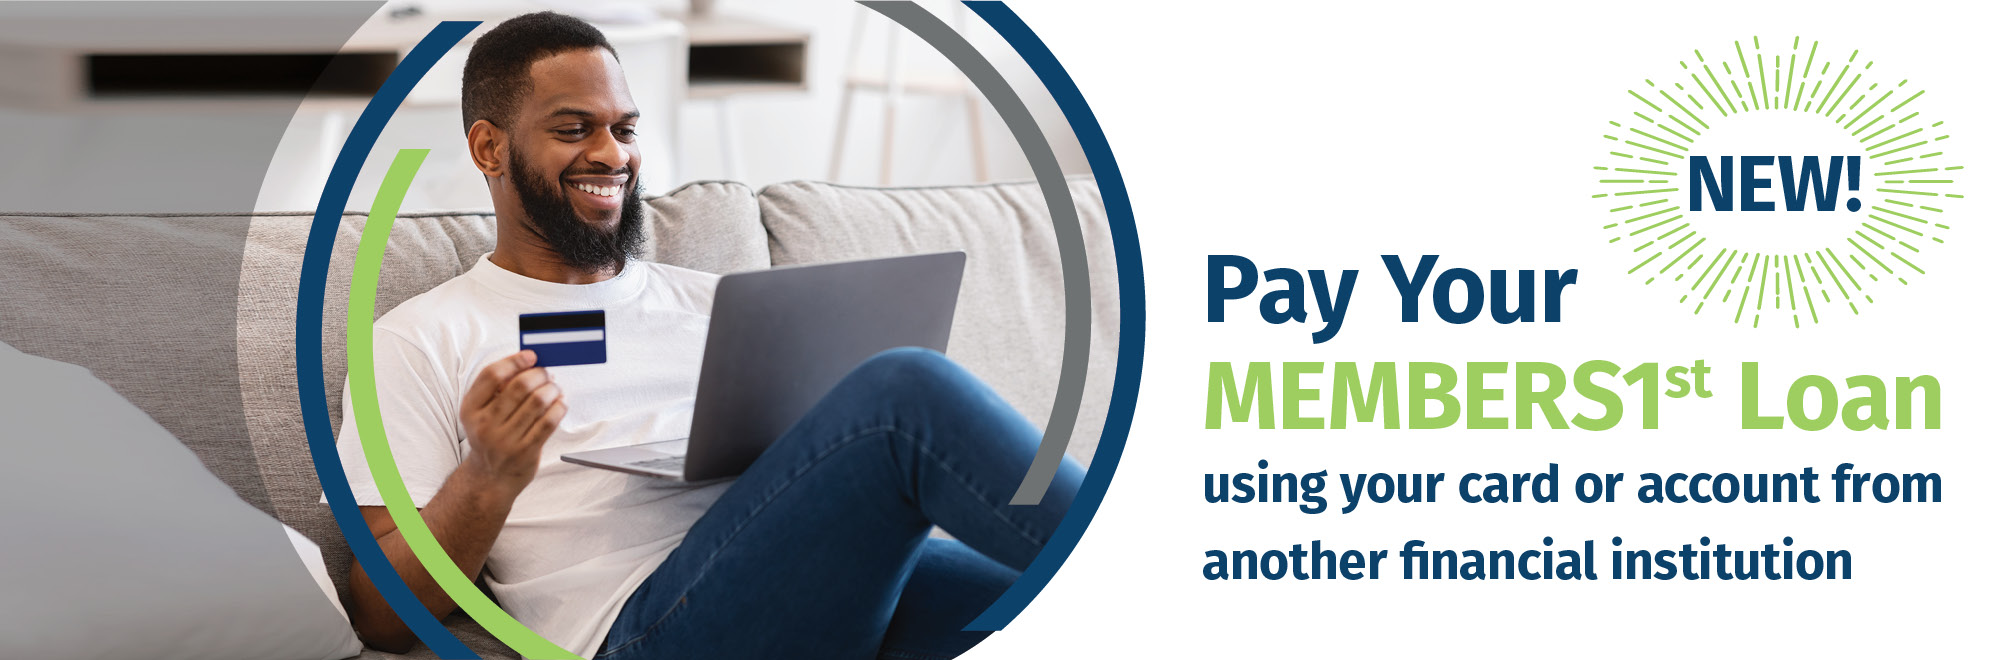 NEW! Pay your MEMBERS1st Loan using your card or account from another financial institution